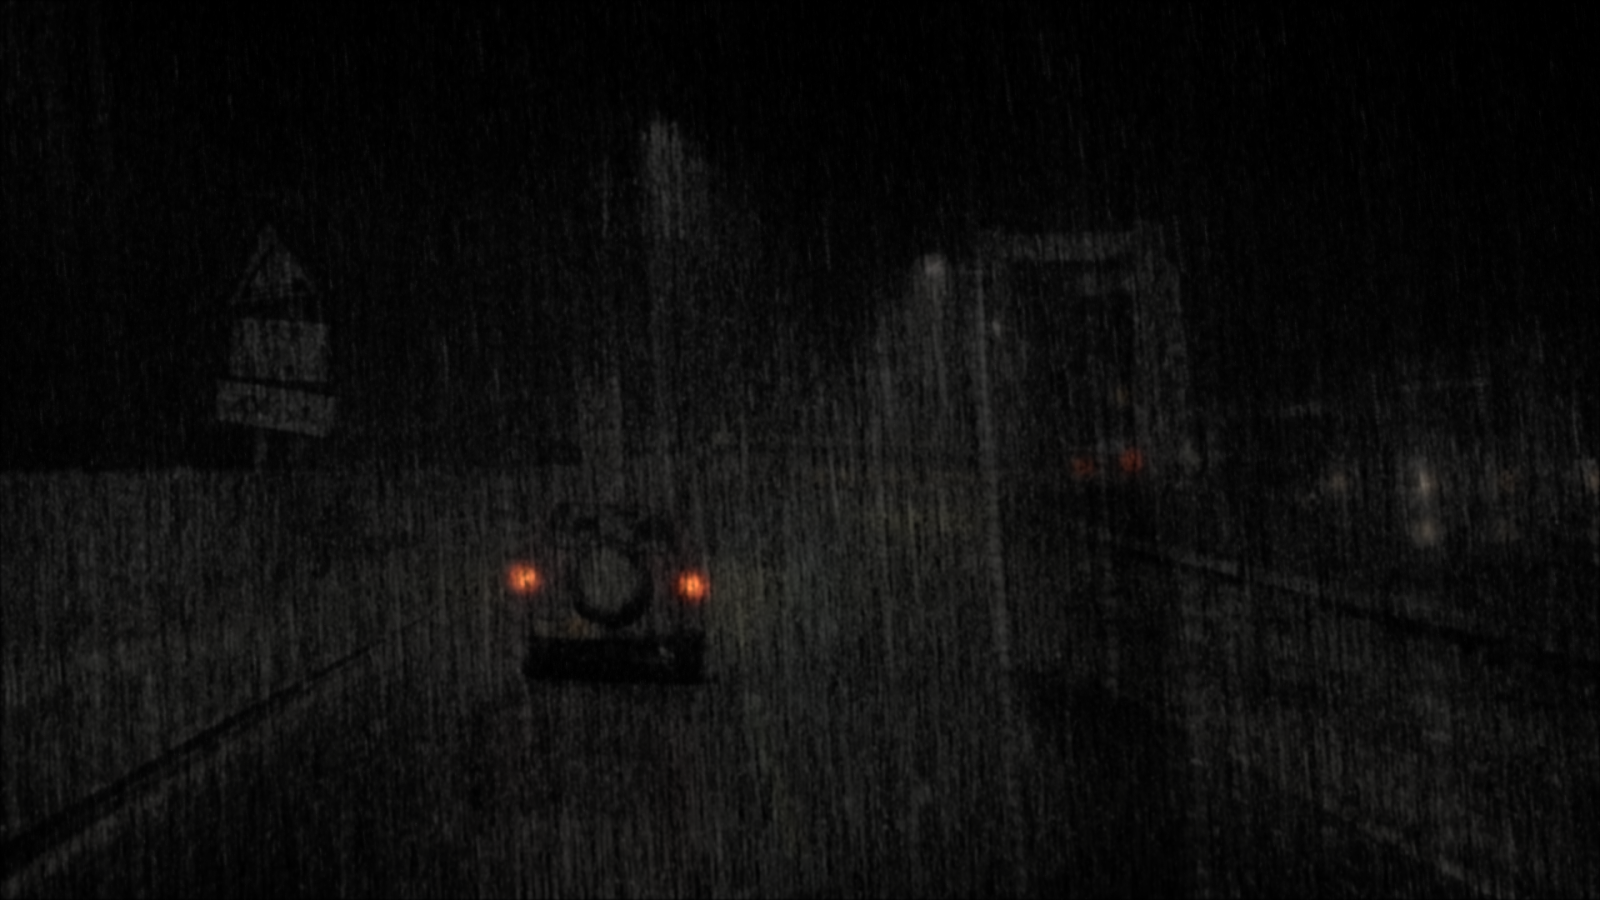 Proxy geo generated in the initial stages of the shot pipeline to generate a randomised particle system of rain splatter sprites, emulating how real rain splatter looked.